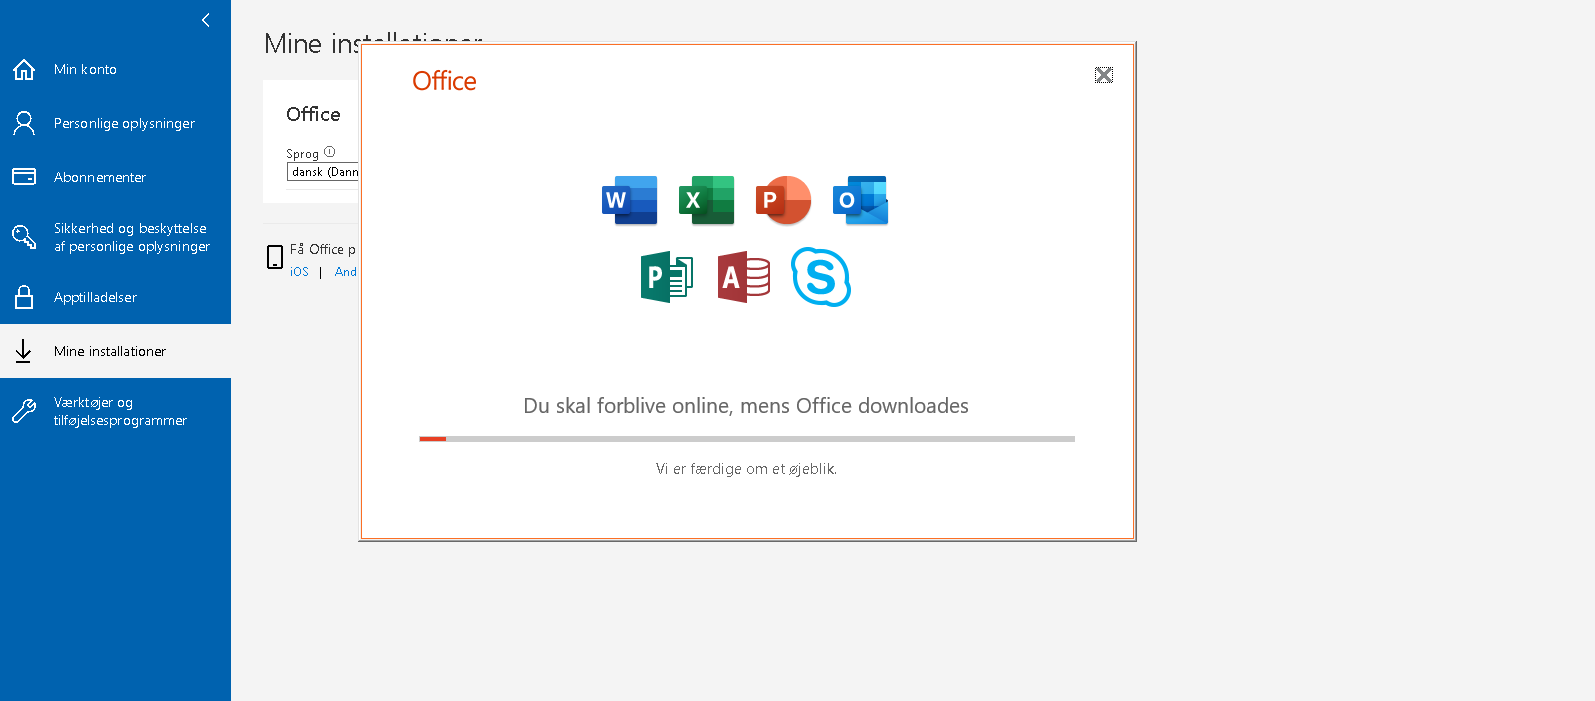 9microsoft_forbliv_online_mens_office_hentes